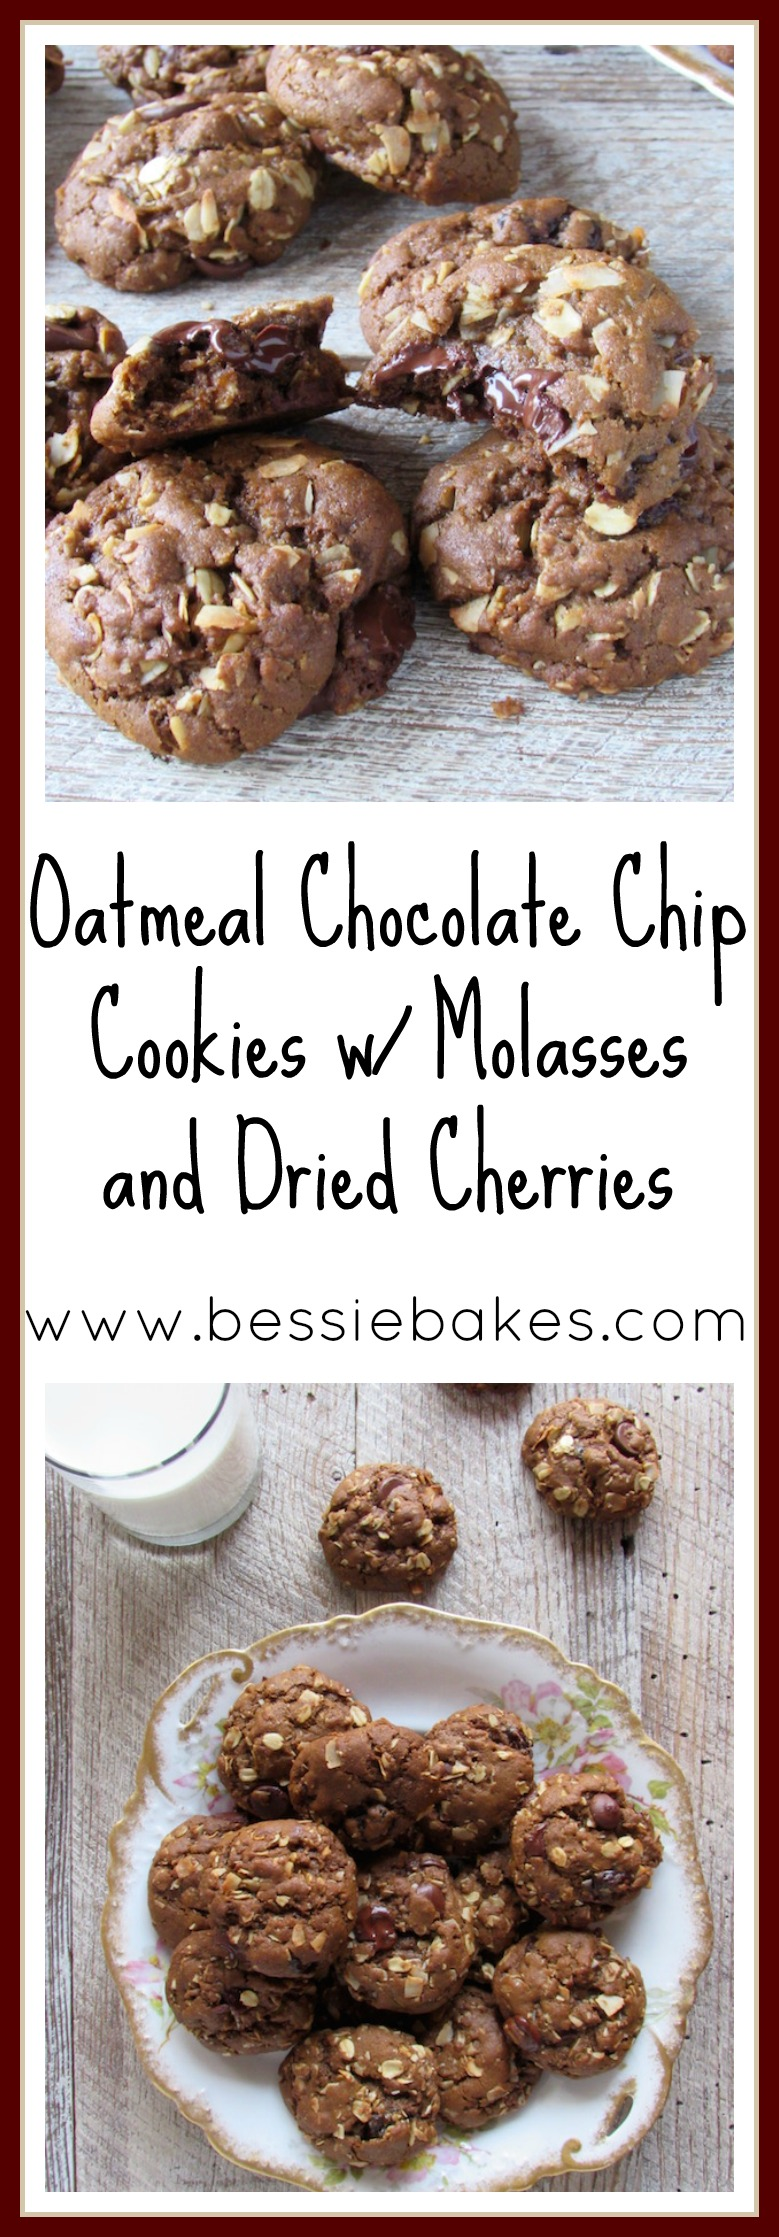 Oatmeal chocolate chip cookies pinterest